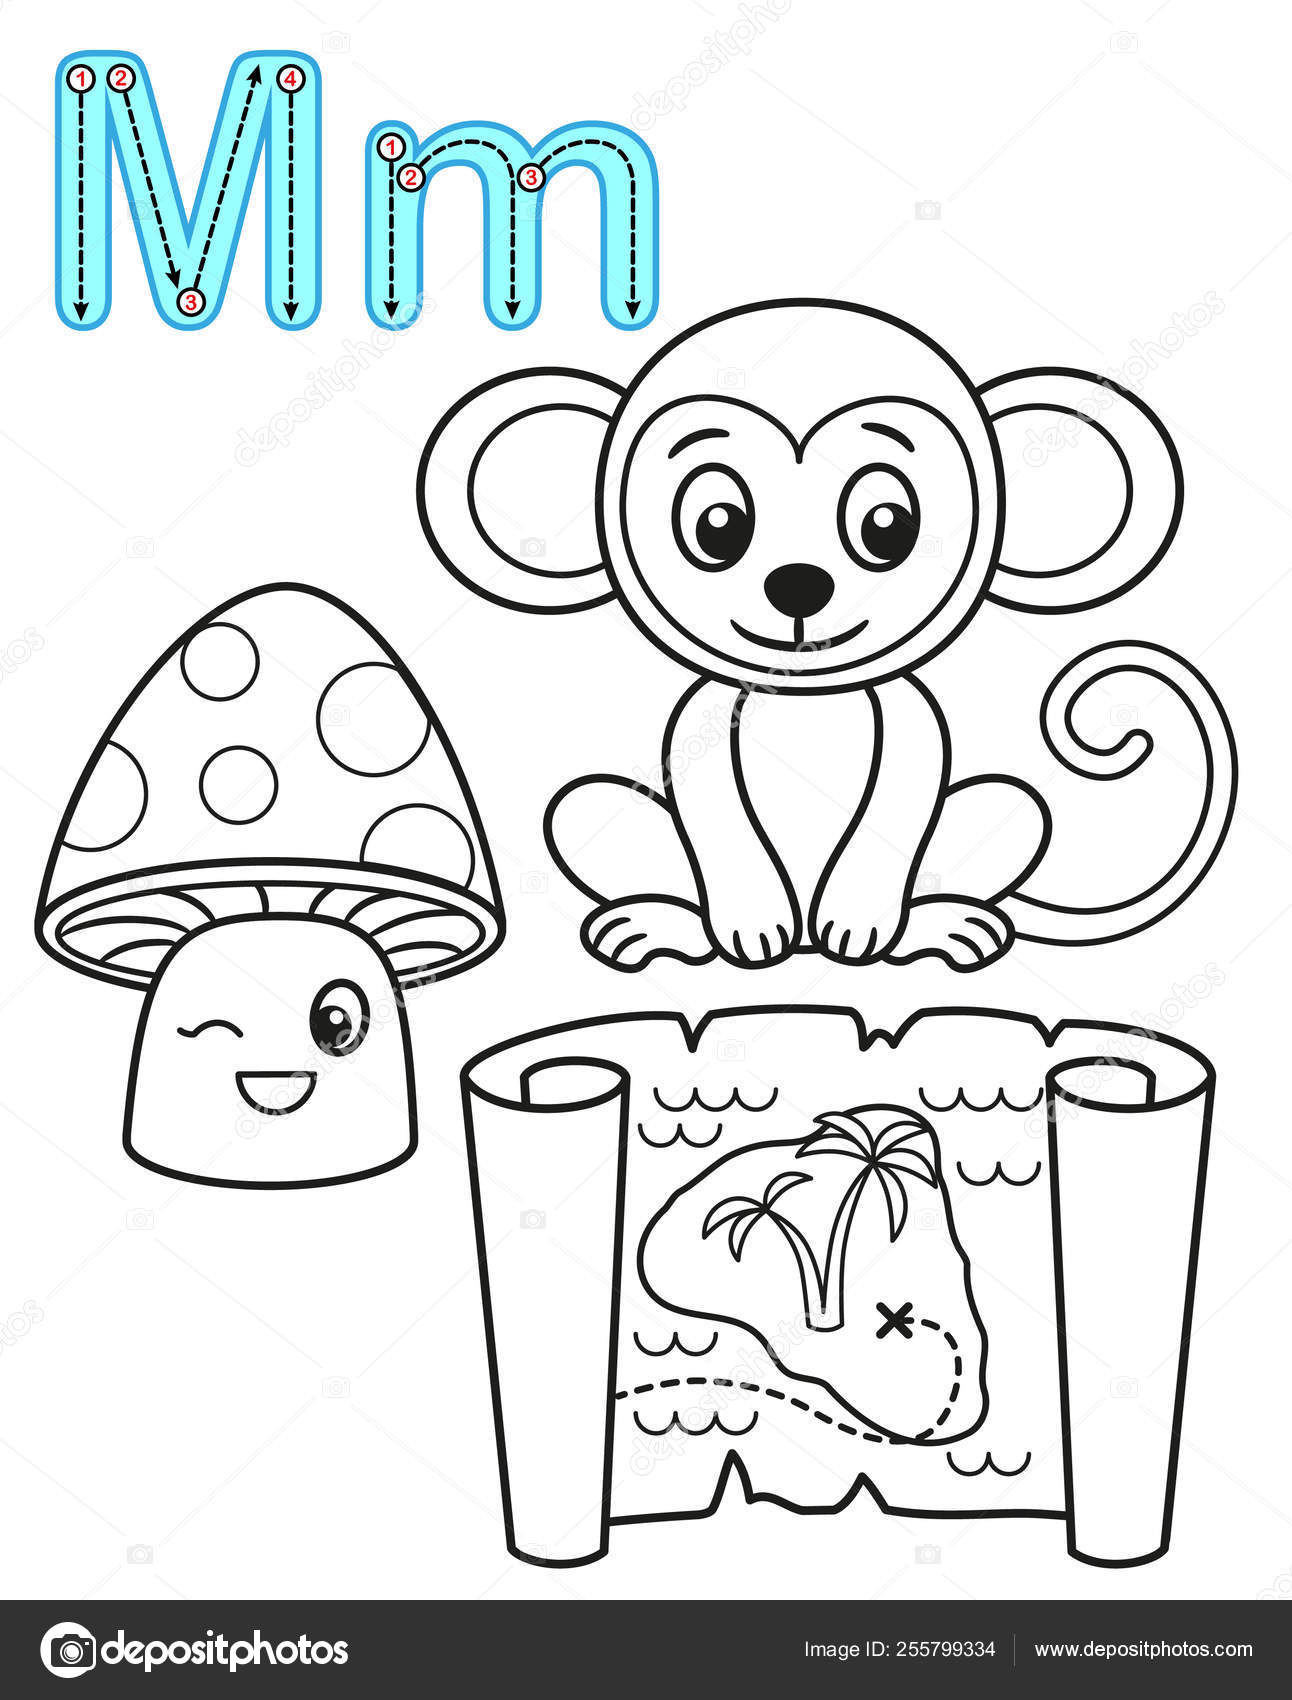 monkey coloring pages free printable - Google Search | Monkey ... | 1700x1292